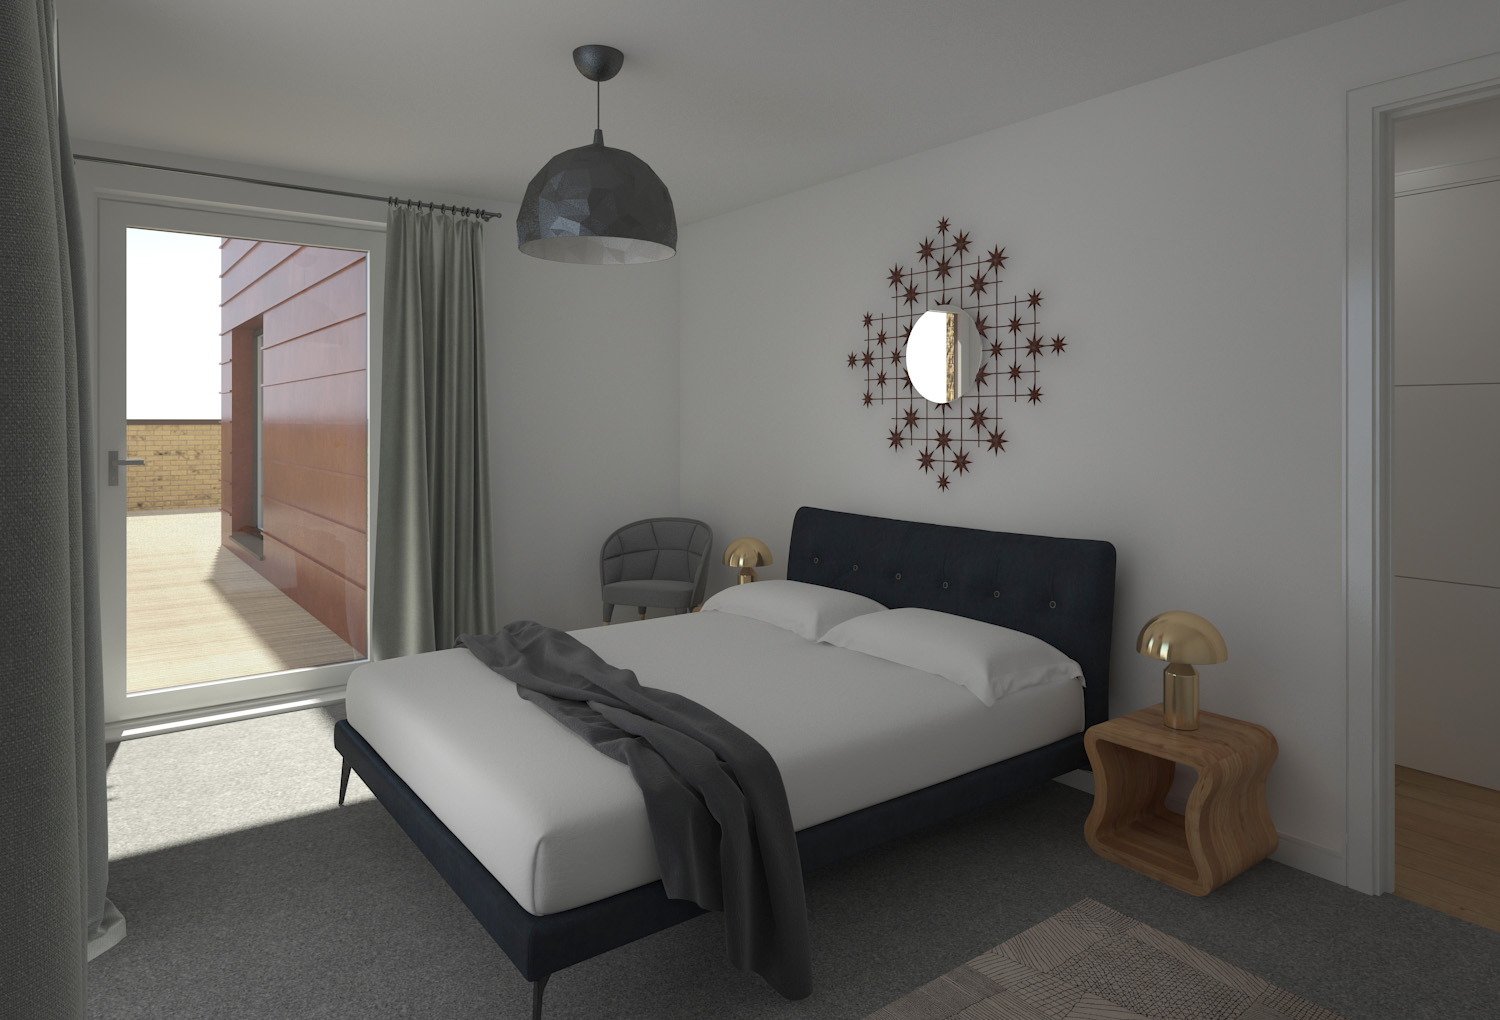 Bed room cgi